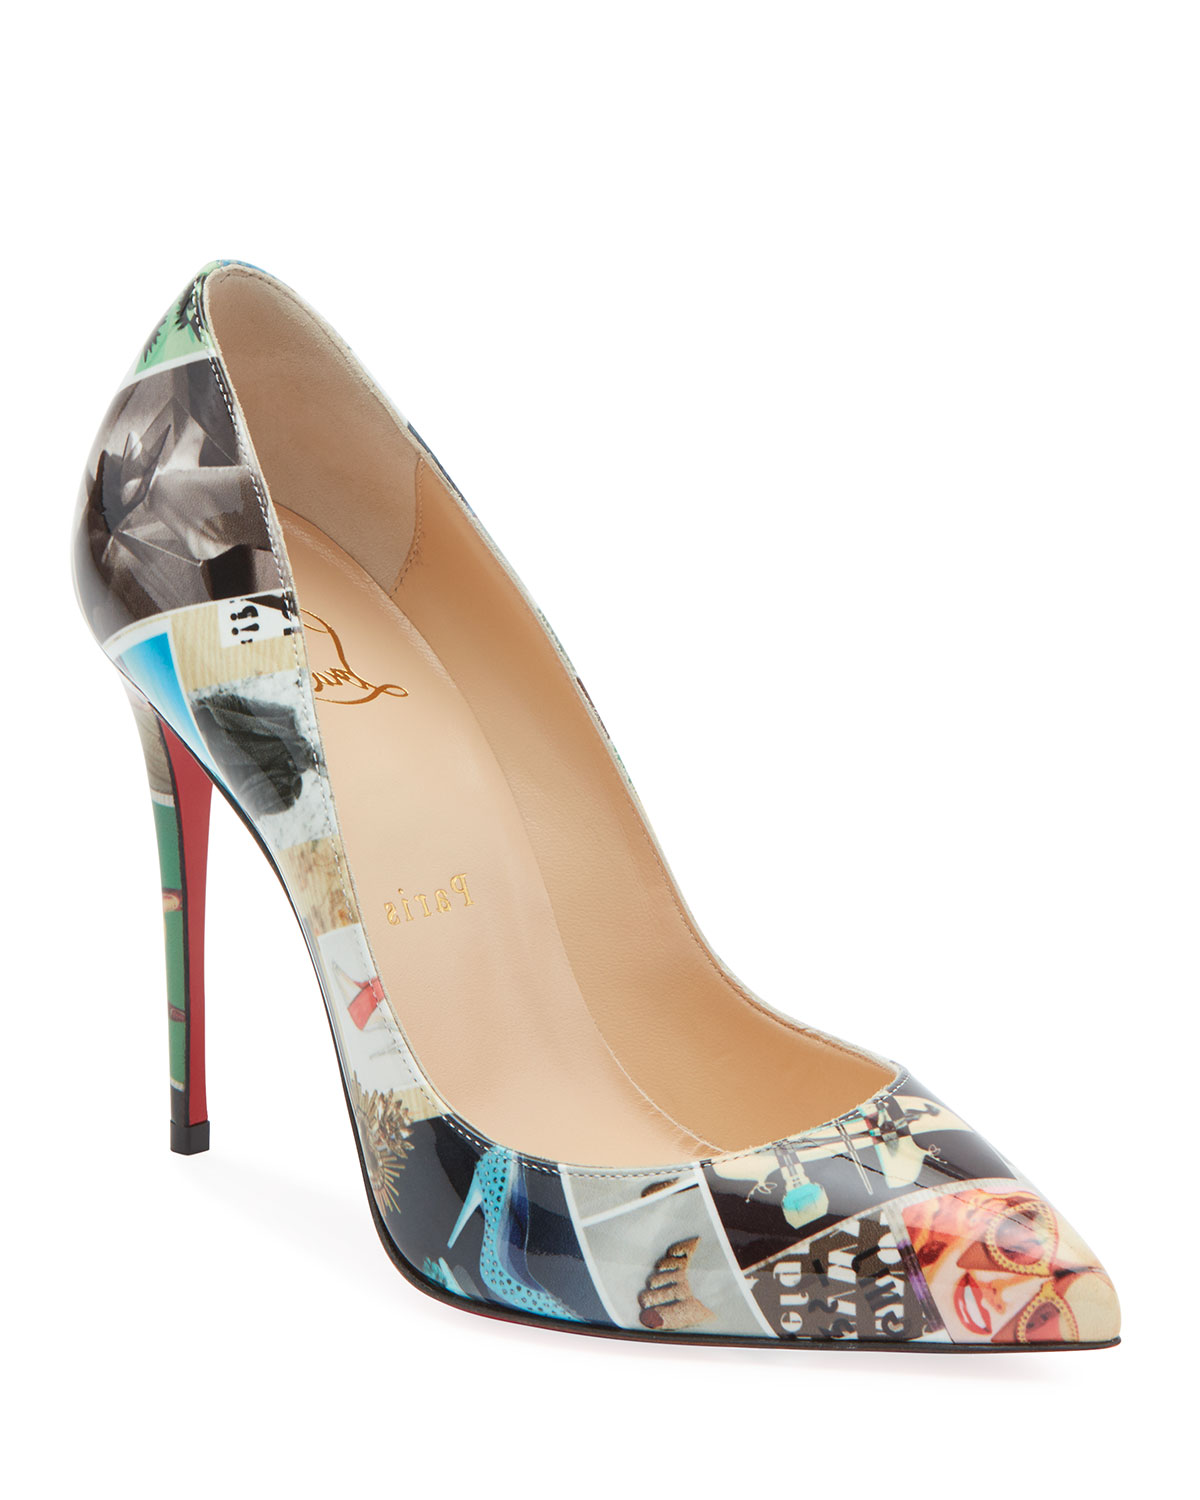 Pigalle Follies Collage Patent Red Sole Pumps